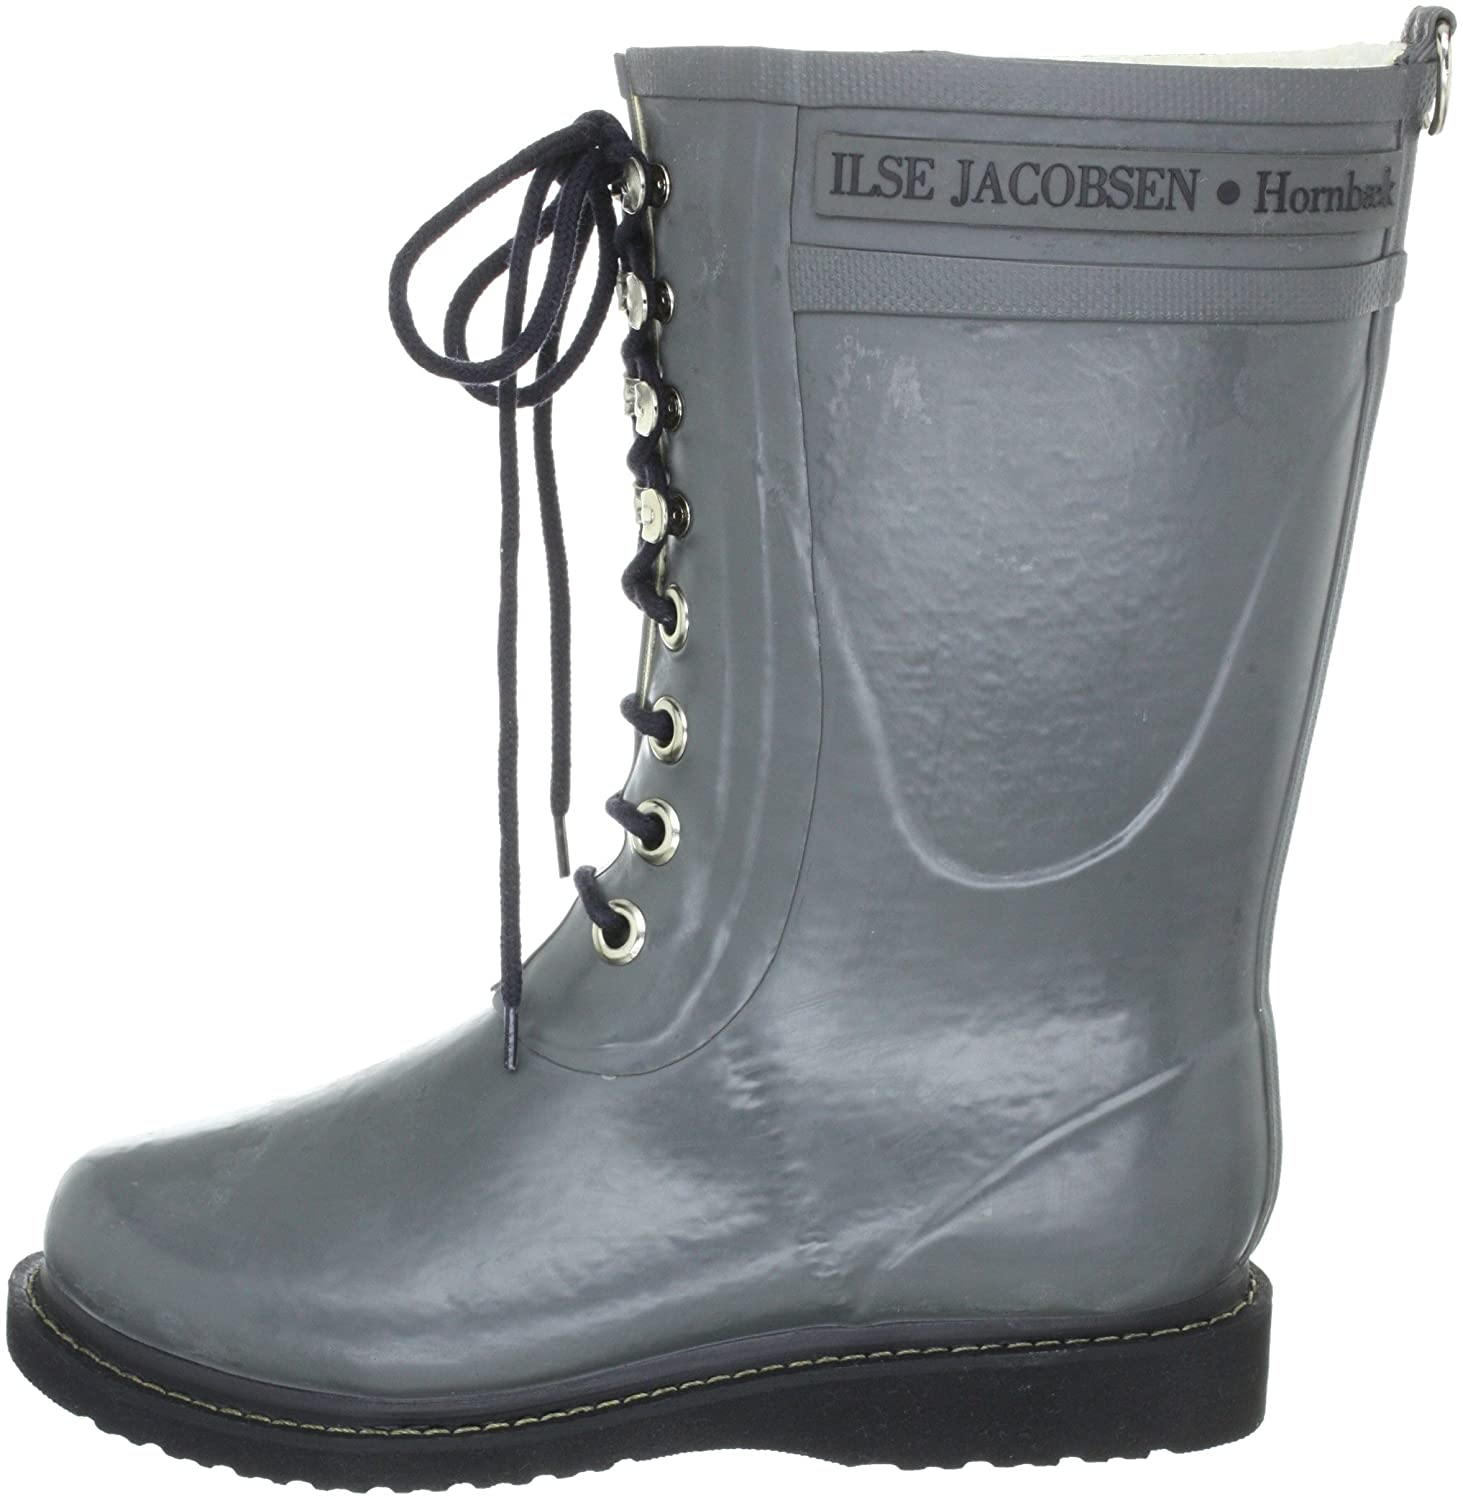 ILSE JACOBSEN Women's Rub 15 Rain 40 Boot B006B0FY18 40 Rain EU/10 M US|Grey d9fea7